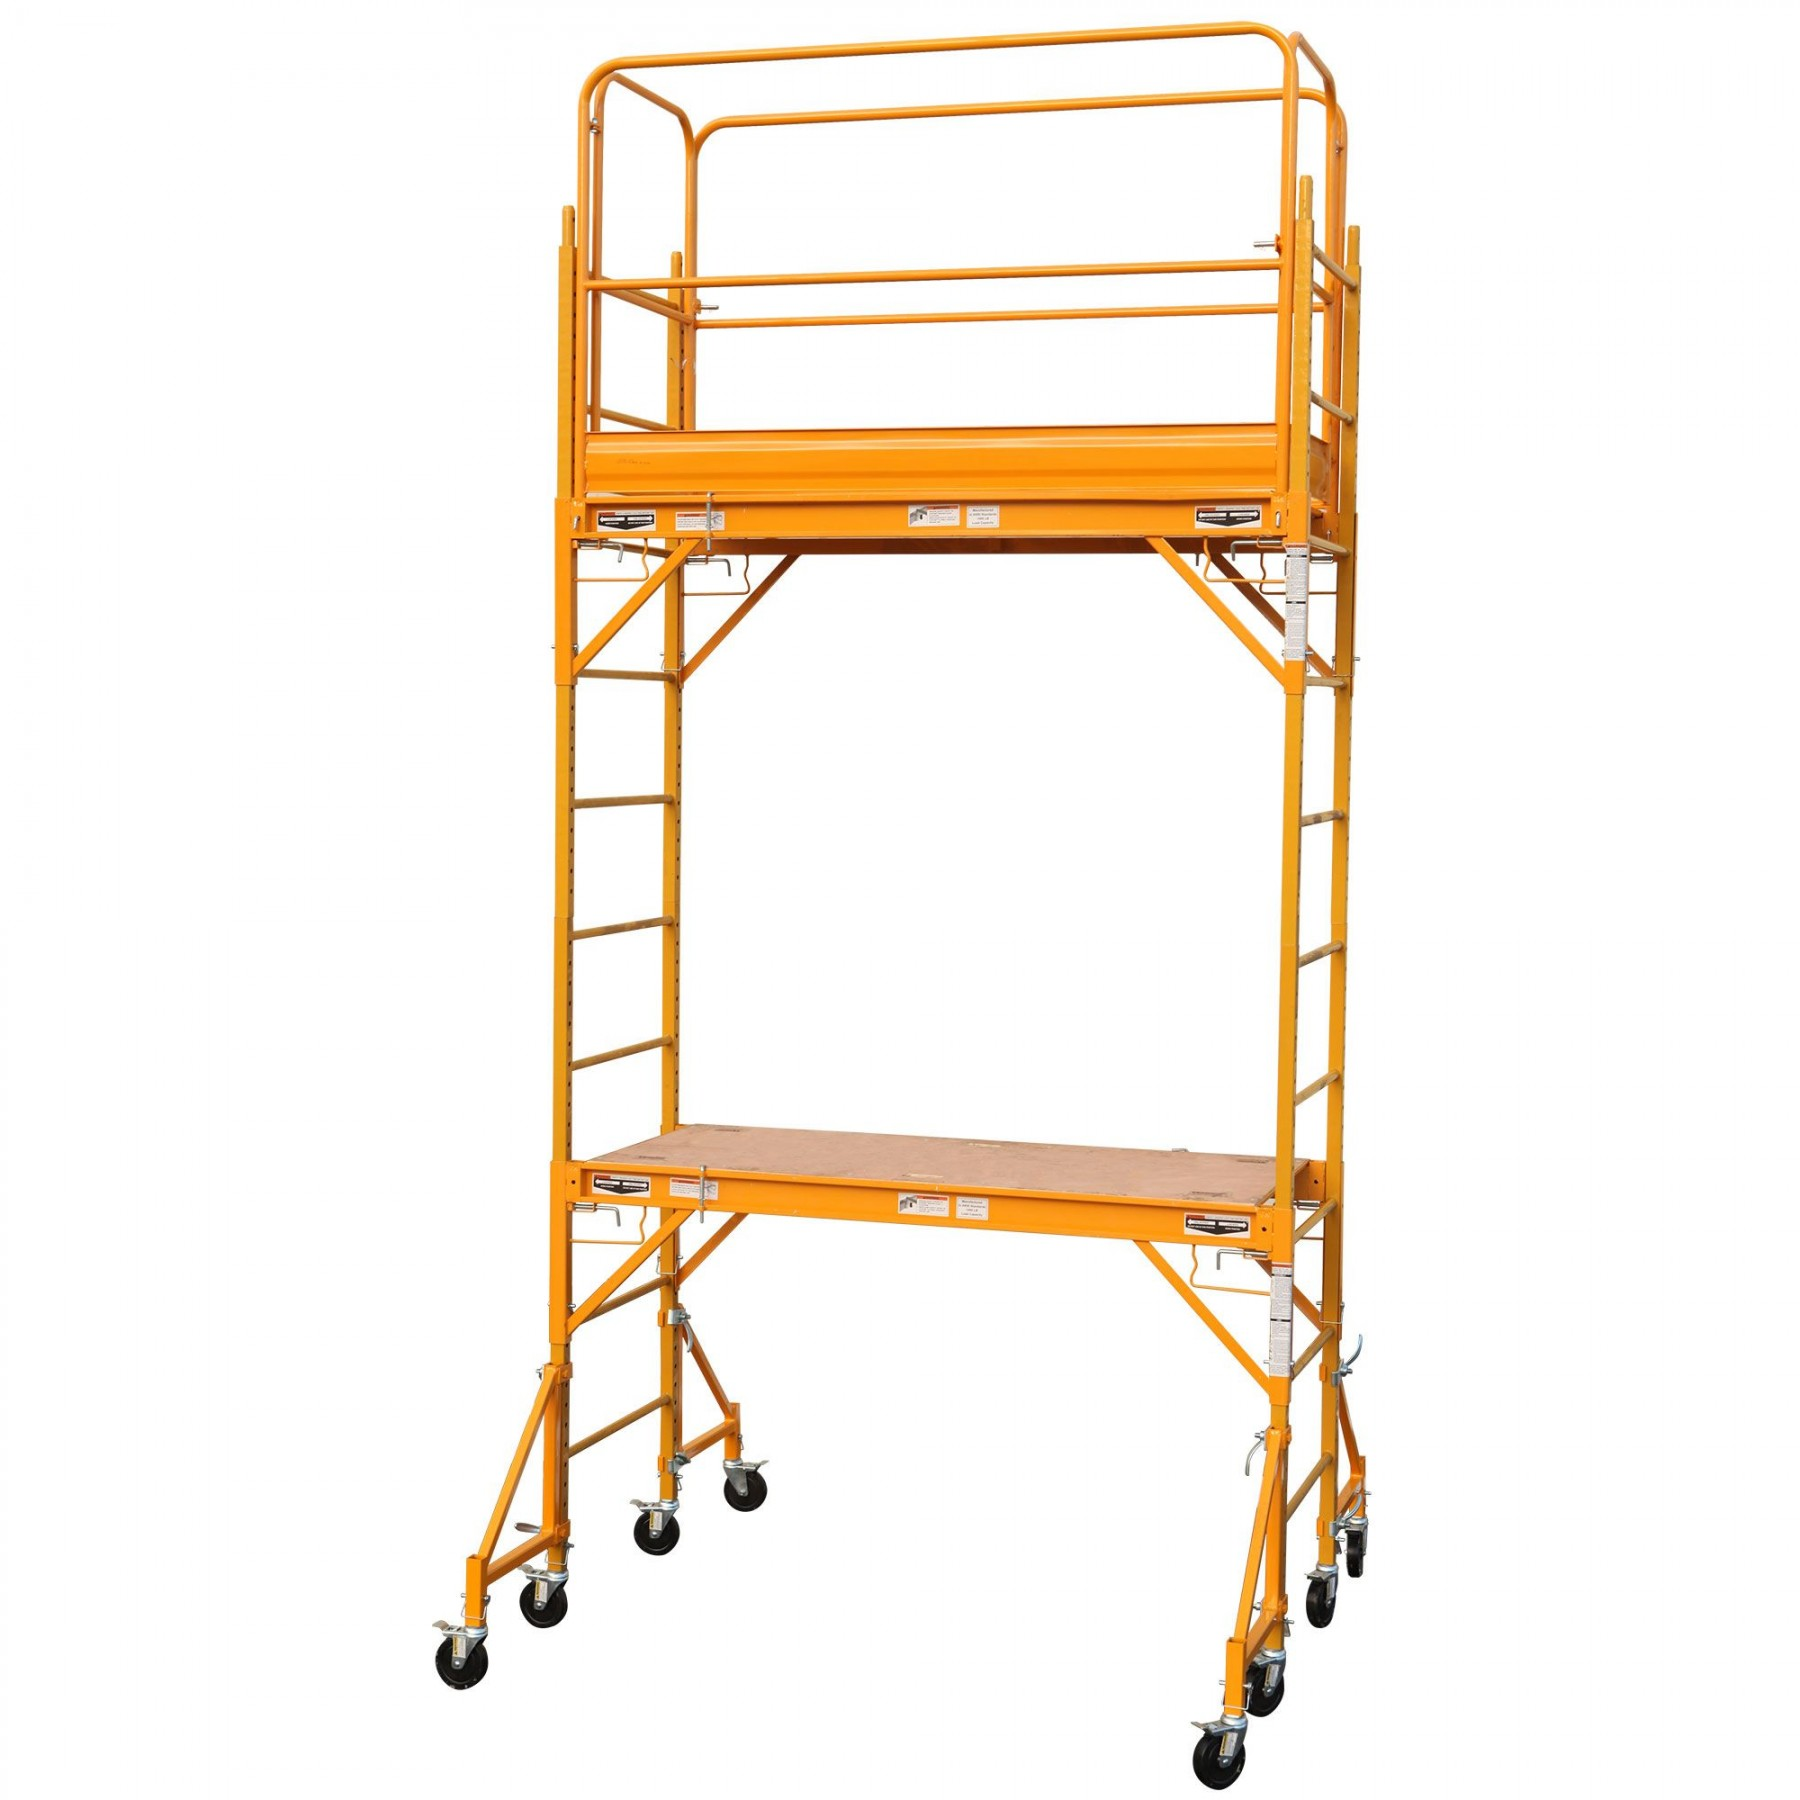 Rolling Scaffold Tower Baker Scaffold 2 sections by